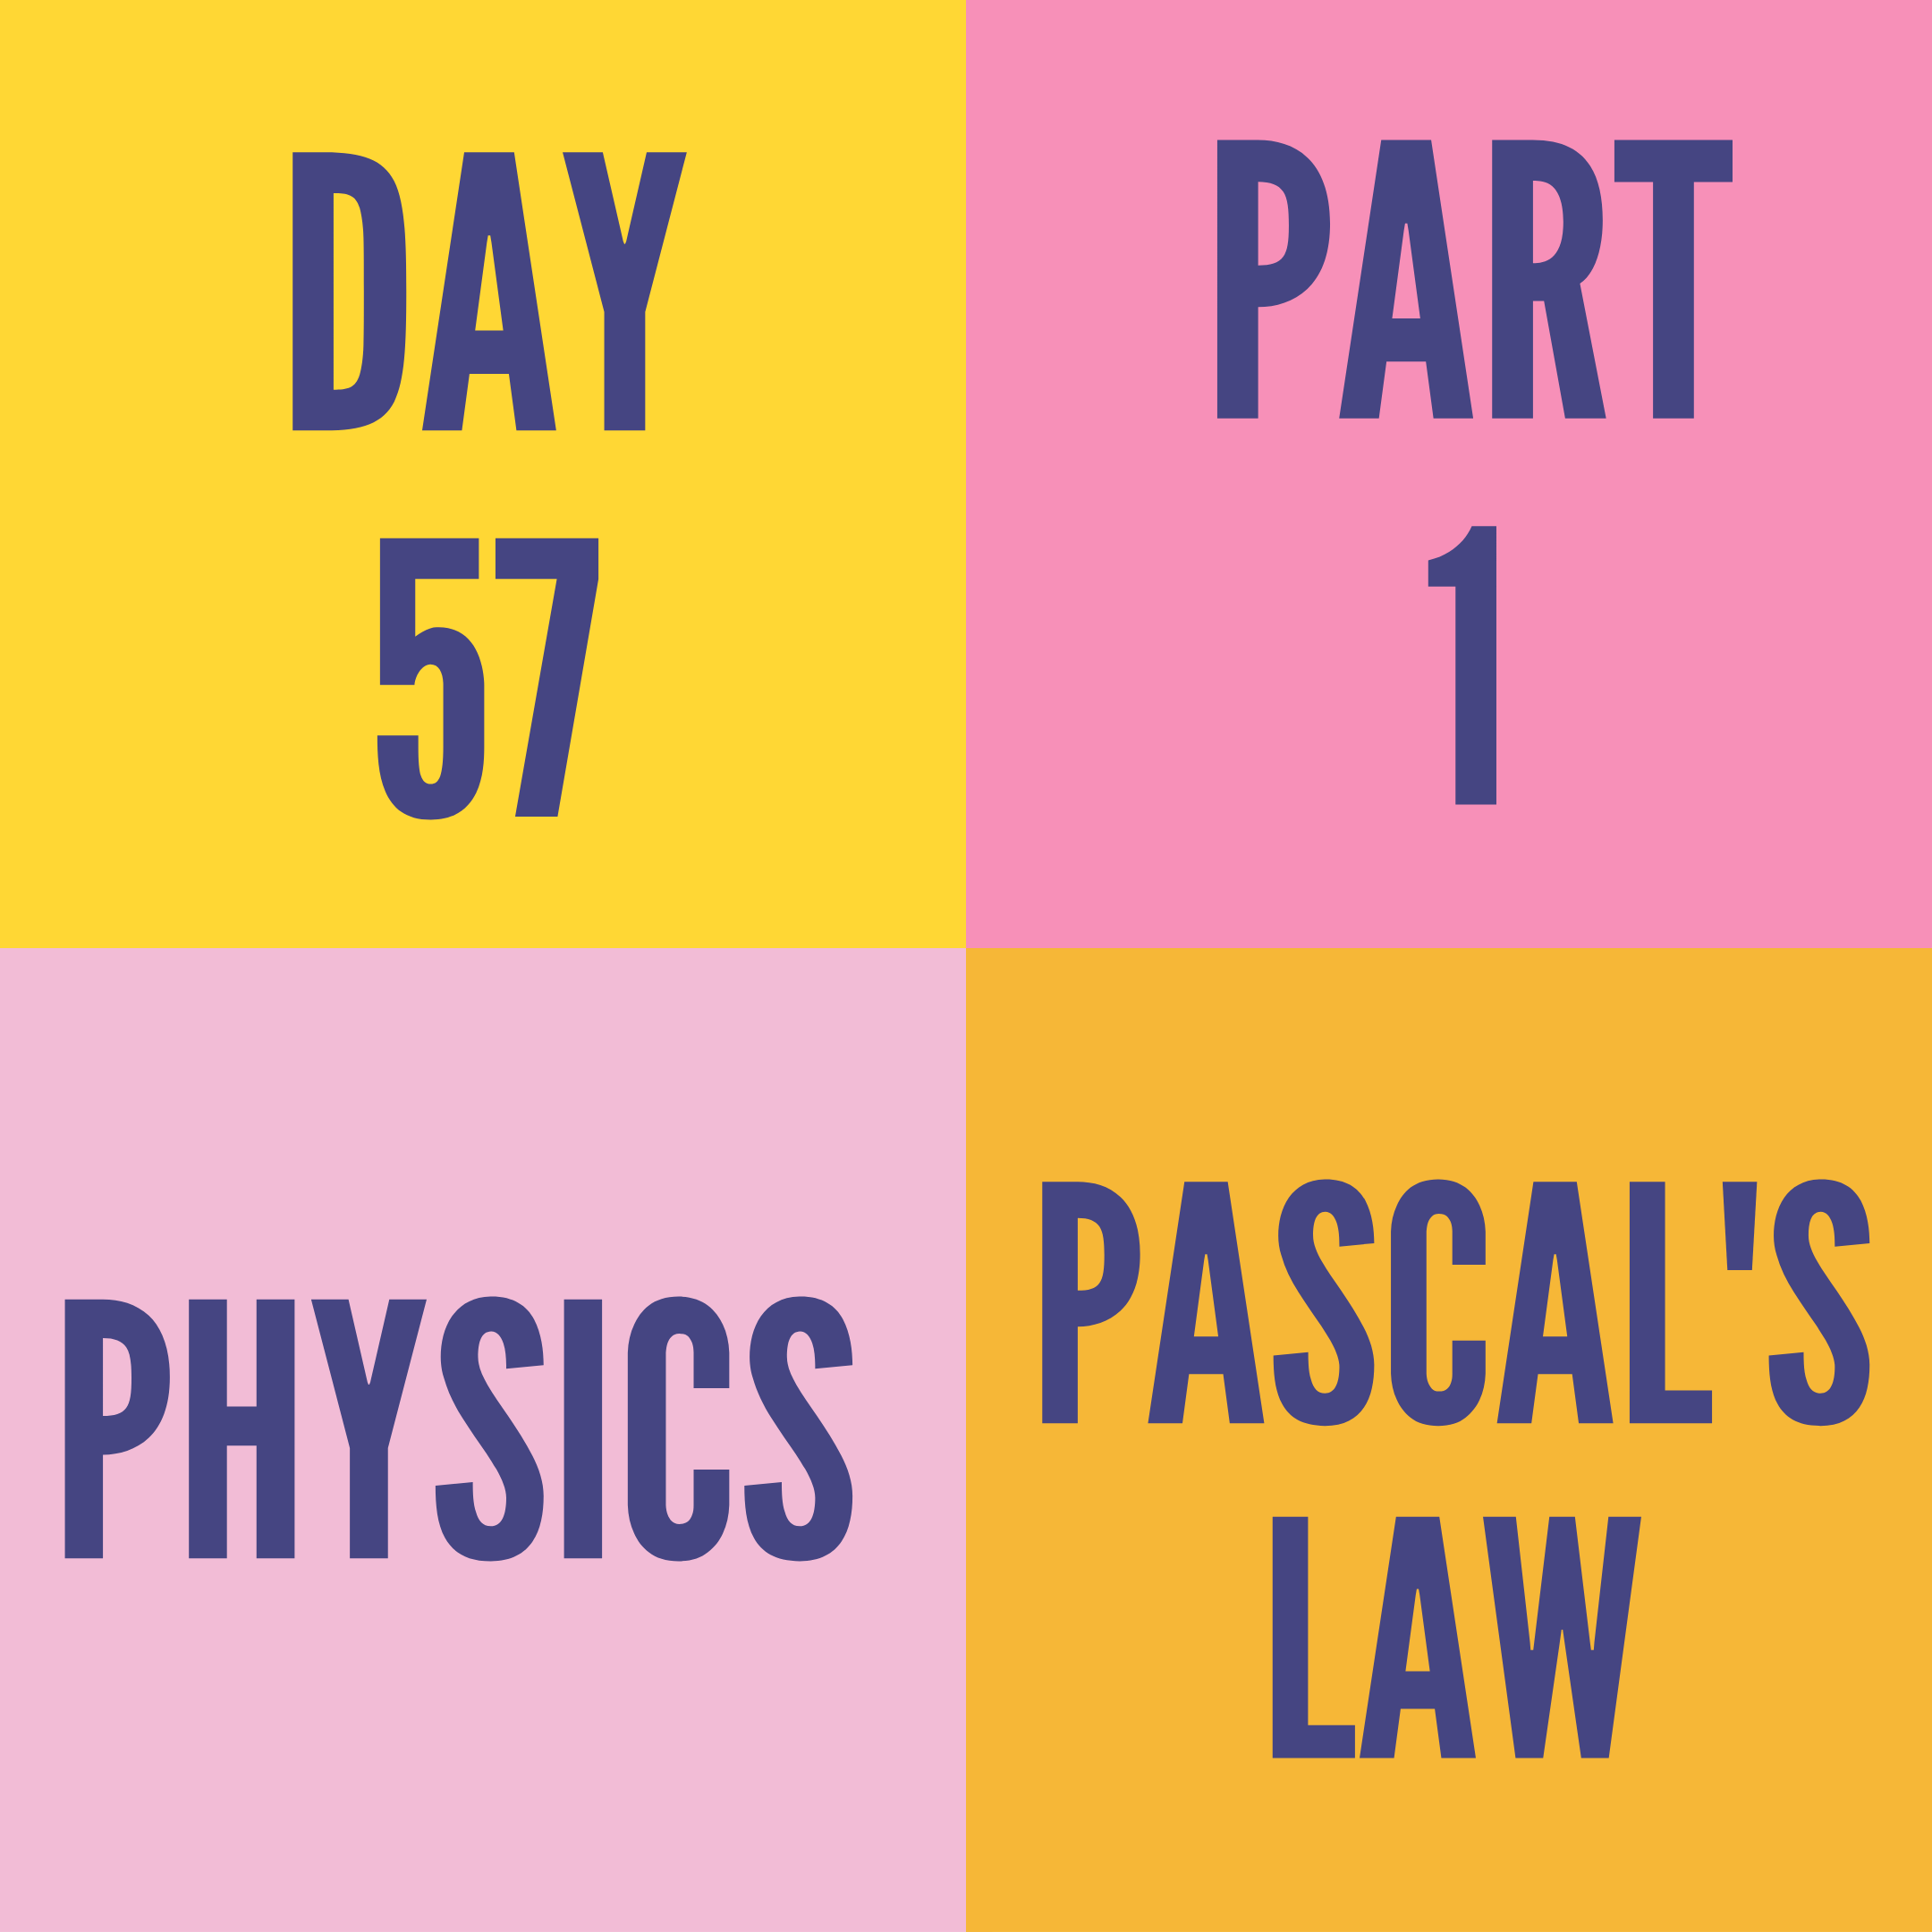 DAY-57 PART-1 PASCAL'S LAW